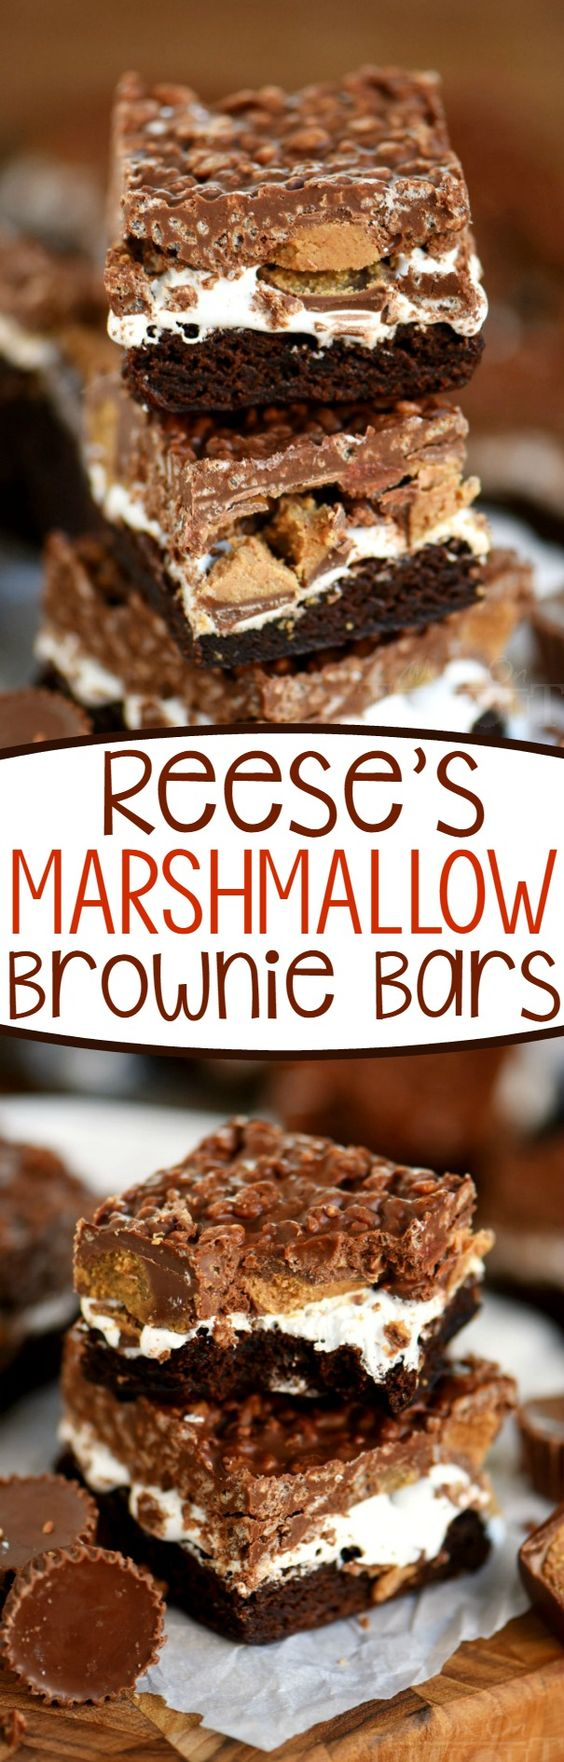 14 Recipes That Use Marshmallow Besides Smores